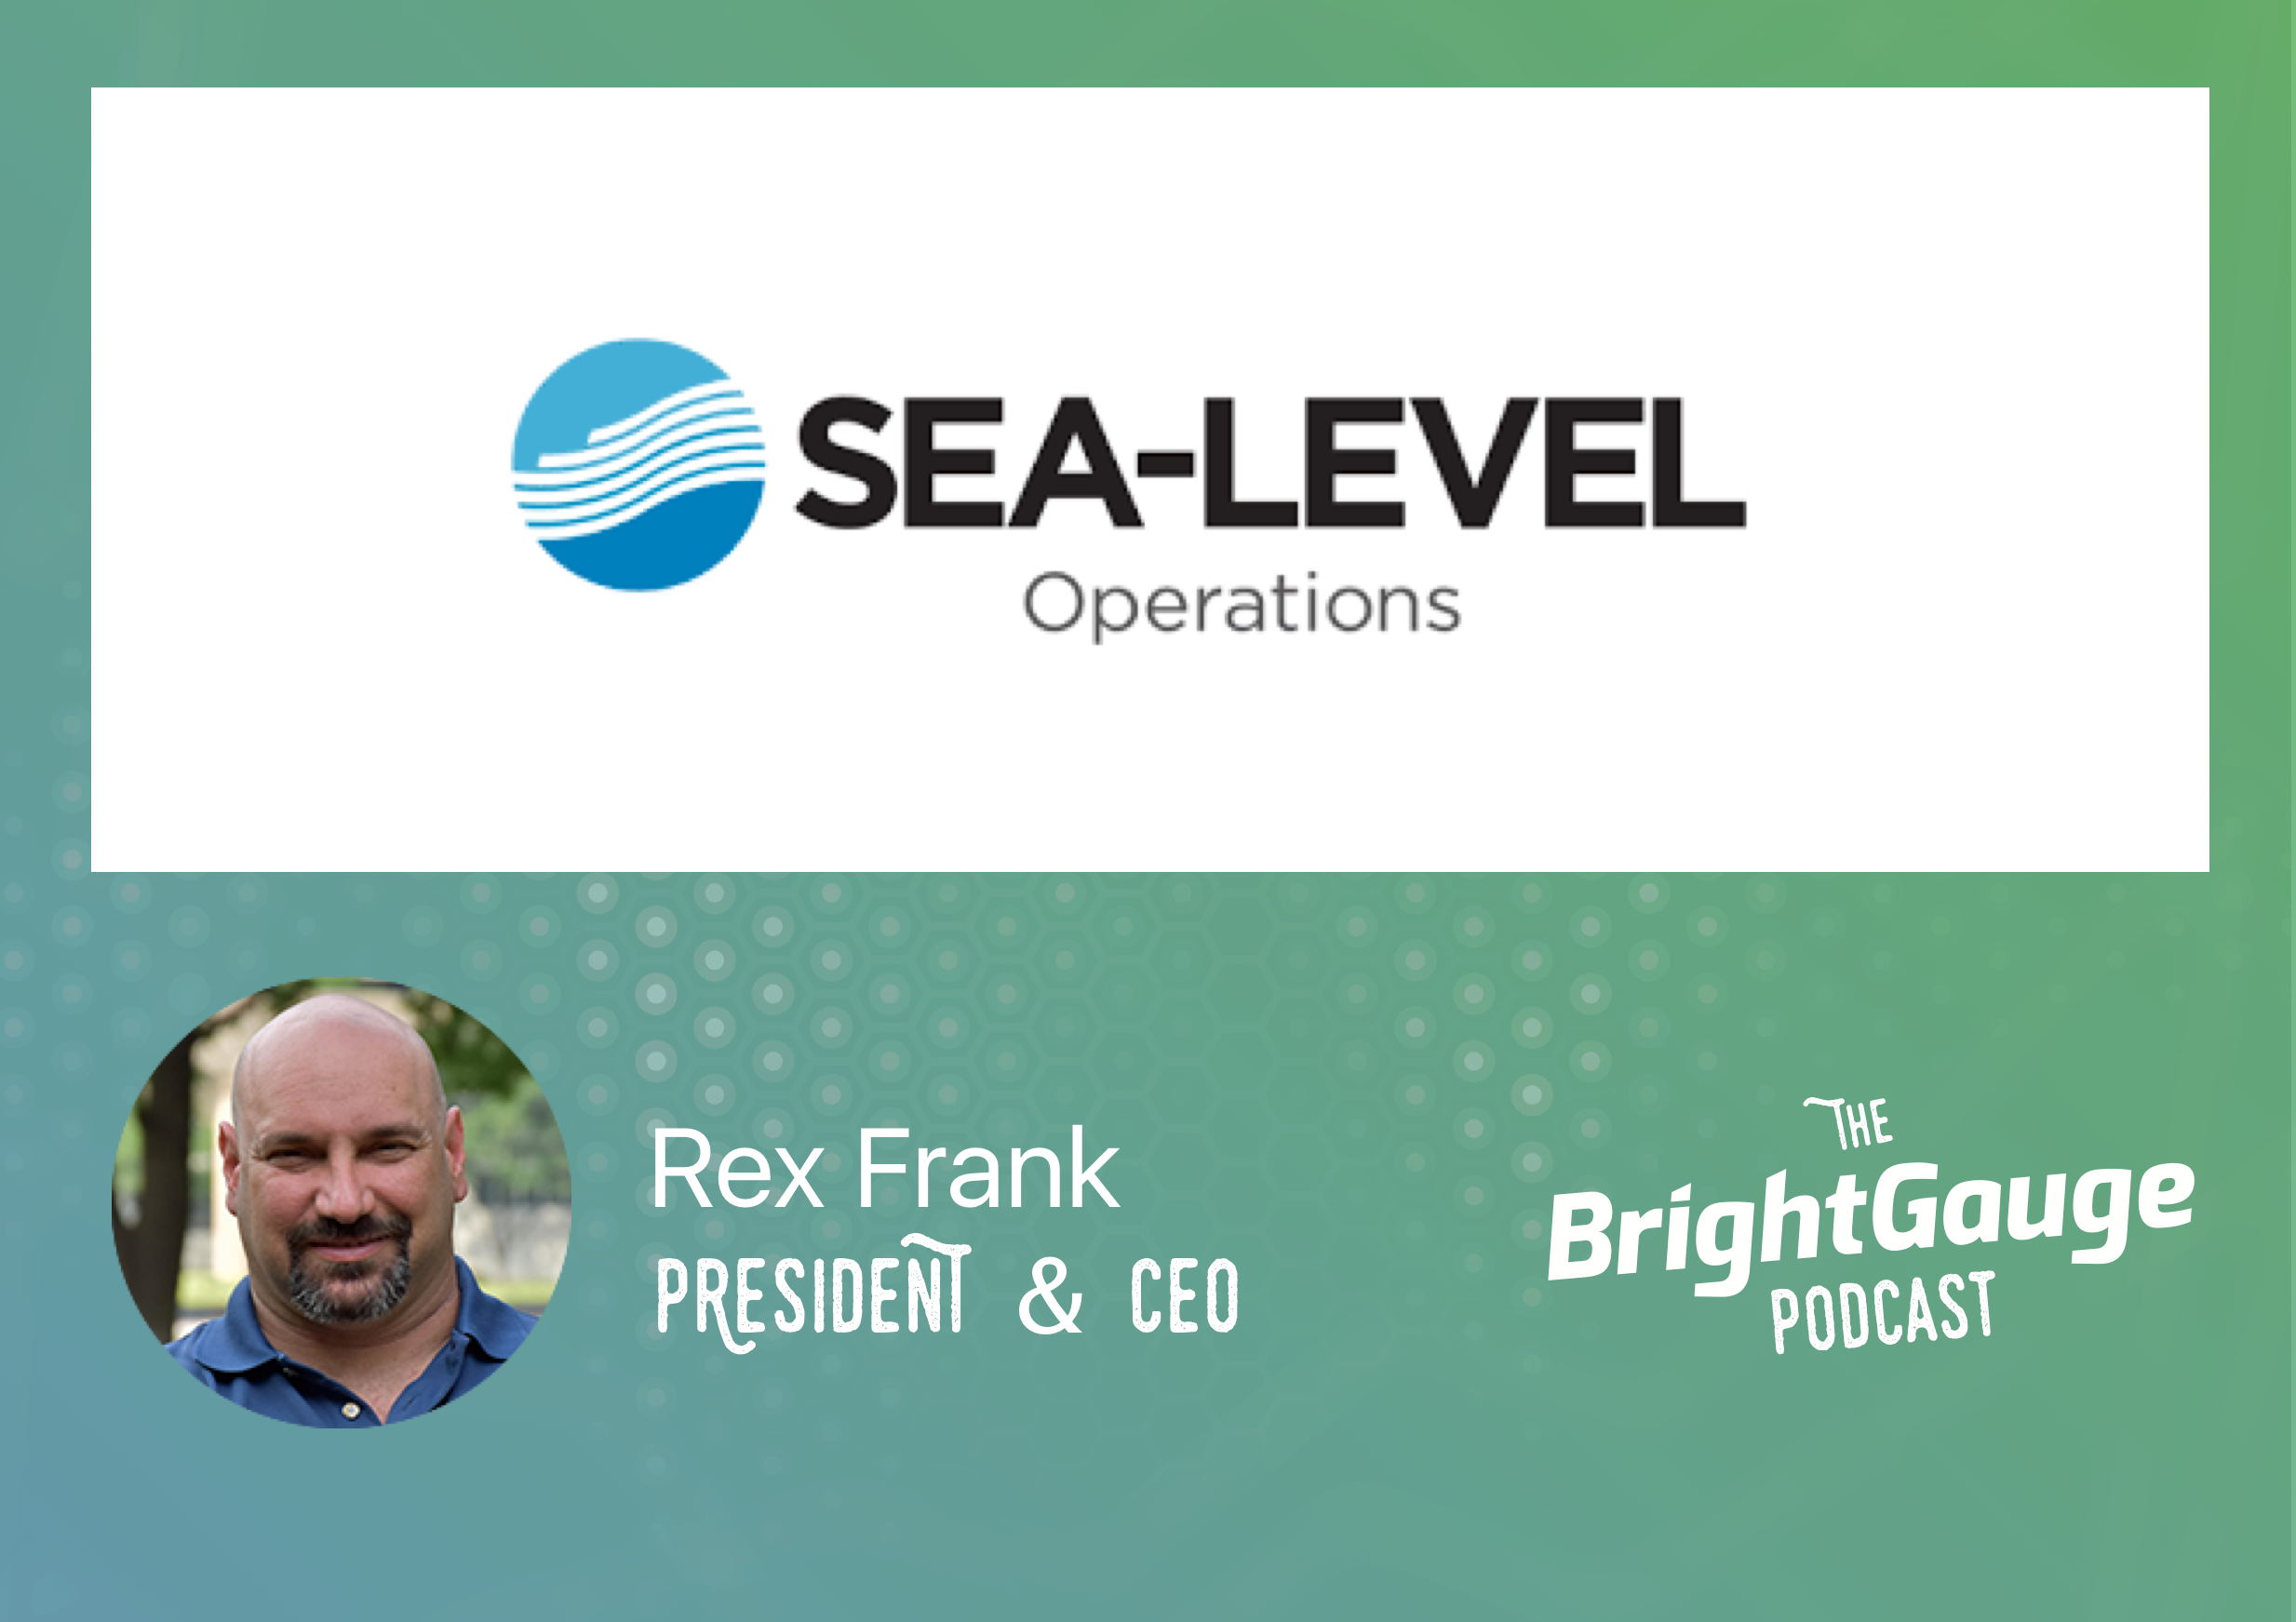 [Podcast] Episode 27 with Rex Frank of Sea Level Operations